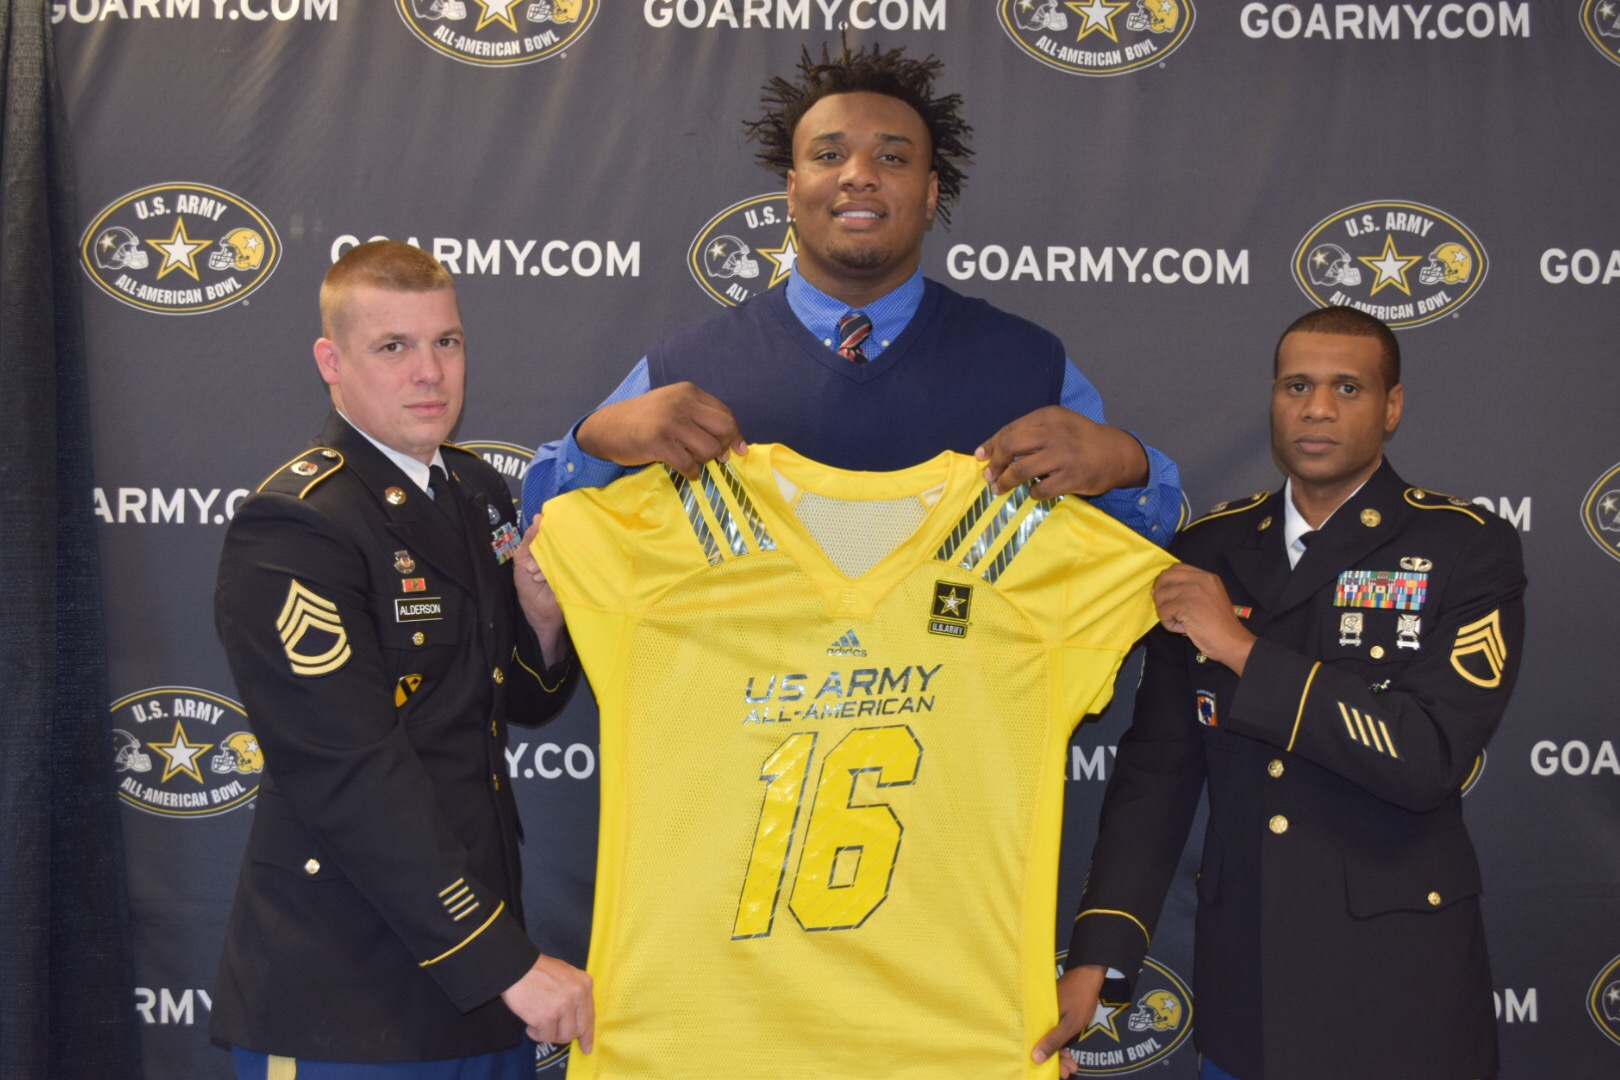 Raekwon Davis receives his Army jersey from (left) Sergeant First Class Thomas Alderson and Staff Sergeant Michael Graham. (Photo: U.S. Army All-American Bowl)